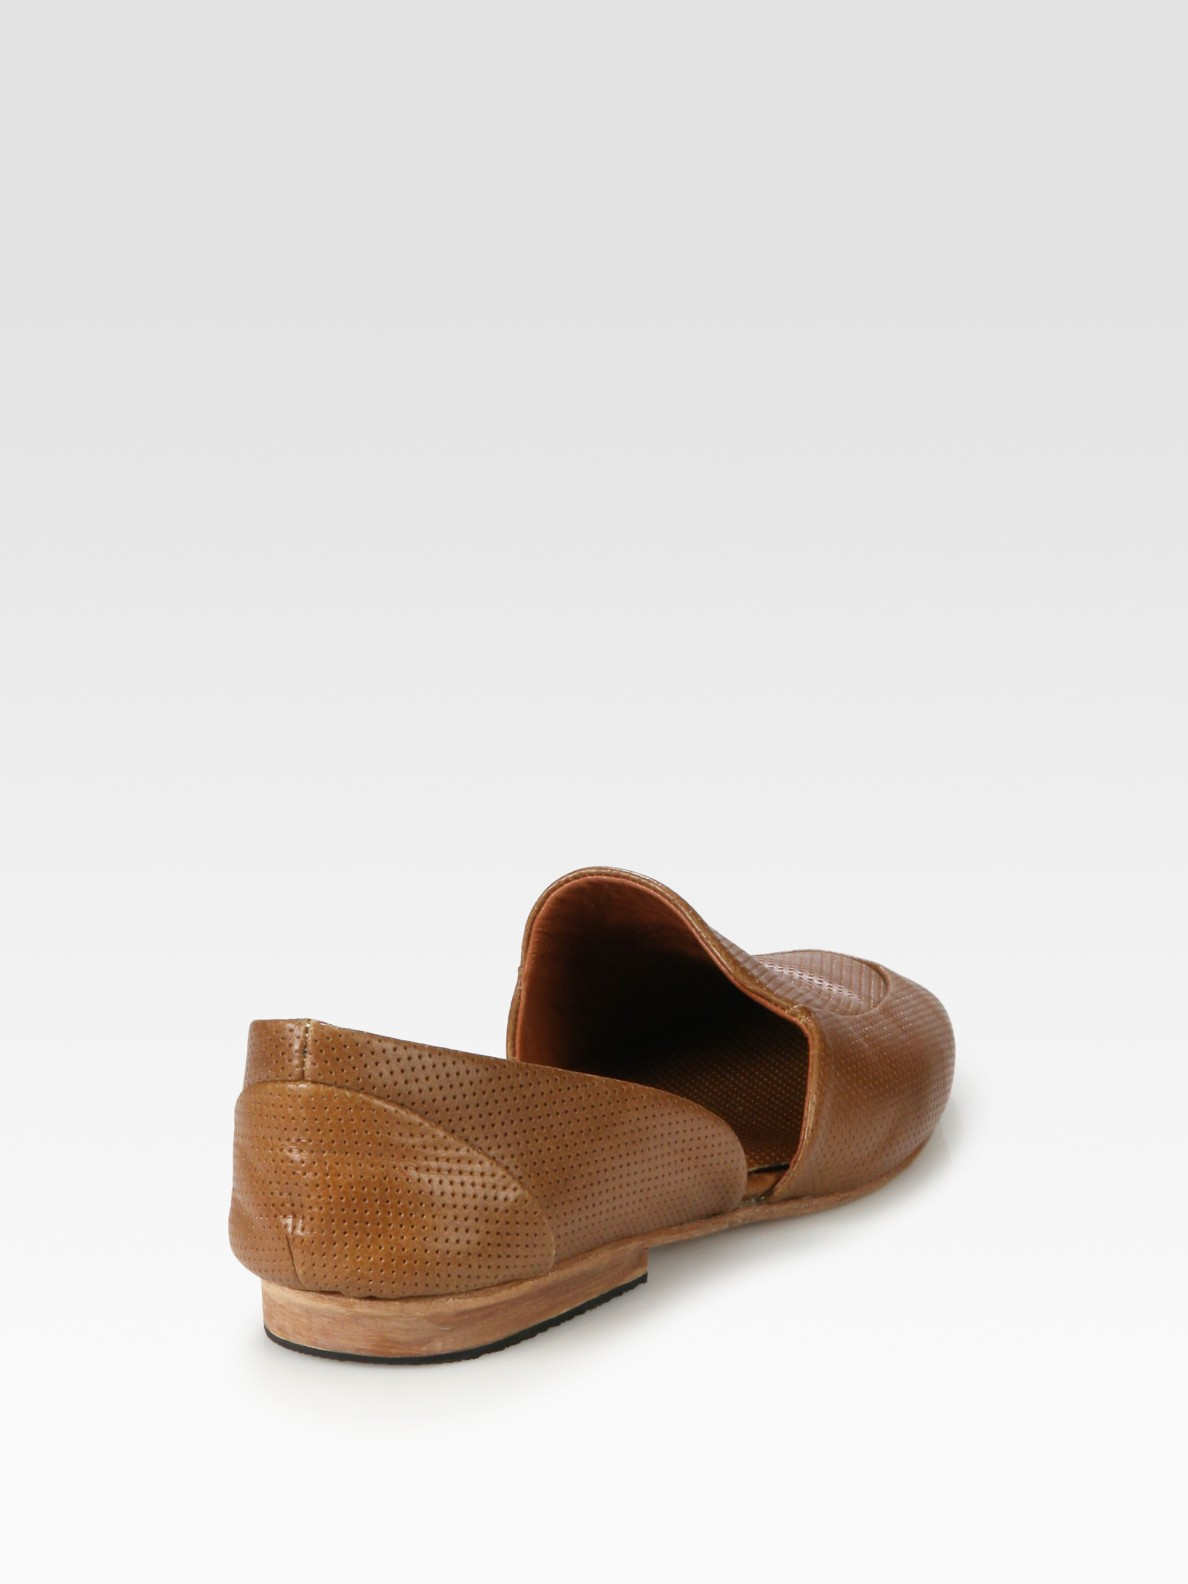 9cb1de315a4 Lyst - Rachel Comey Boyfer Leather Cut-out Penny Loafers in Brown